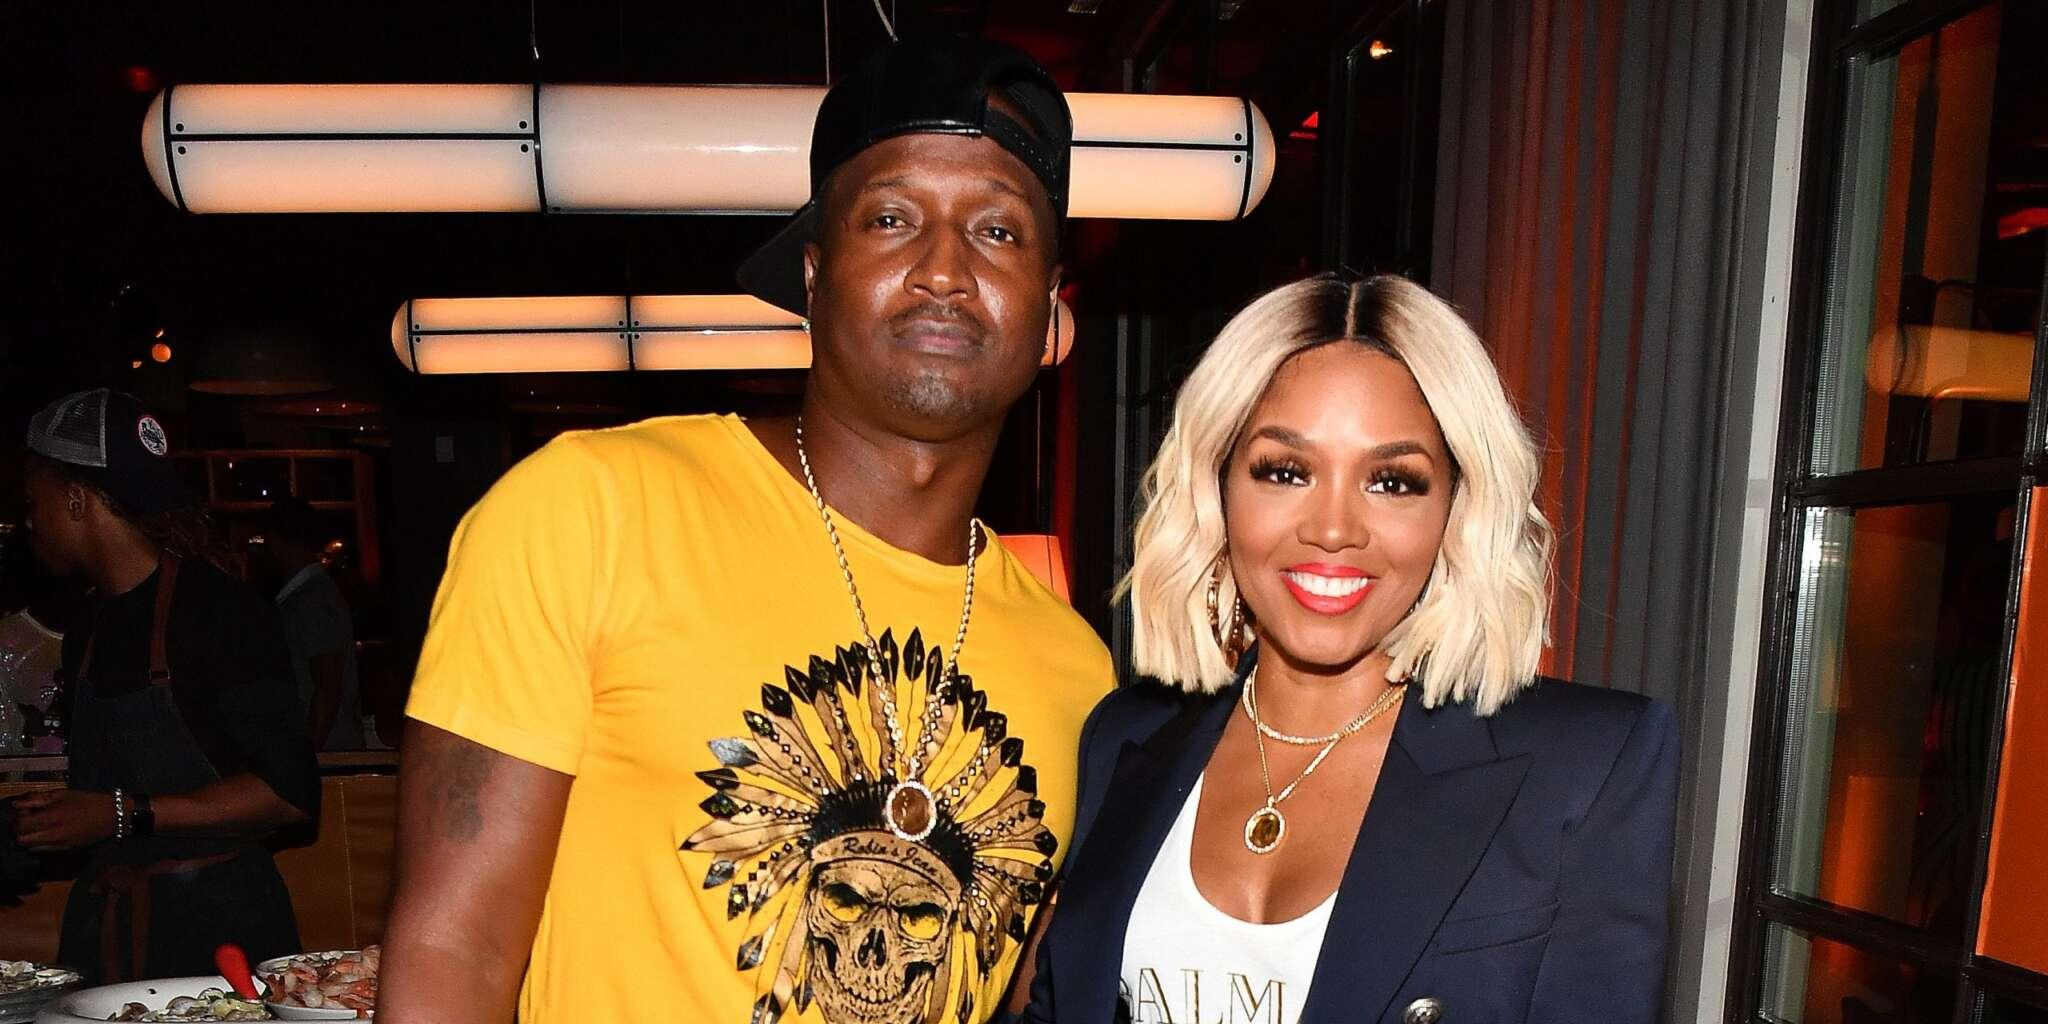 Rasheeda Frost's Latest Video Has Fans In Awe - See Her Latest Look Here